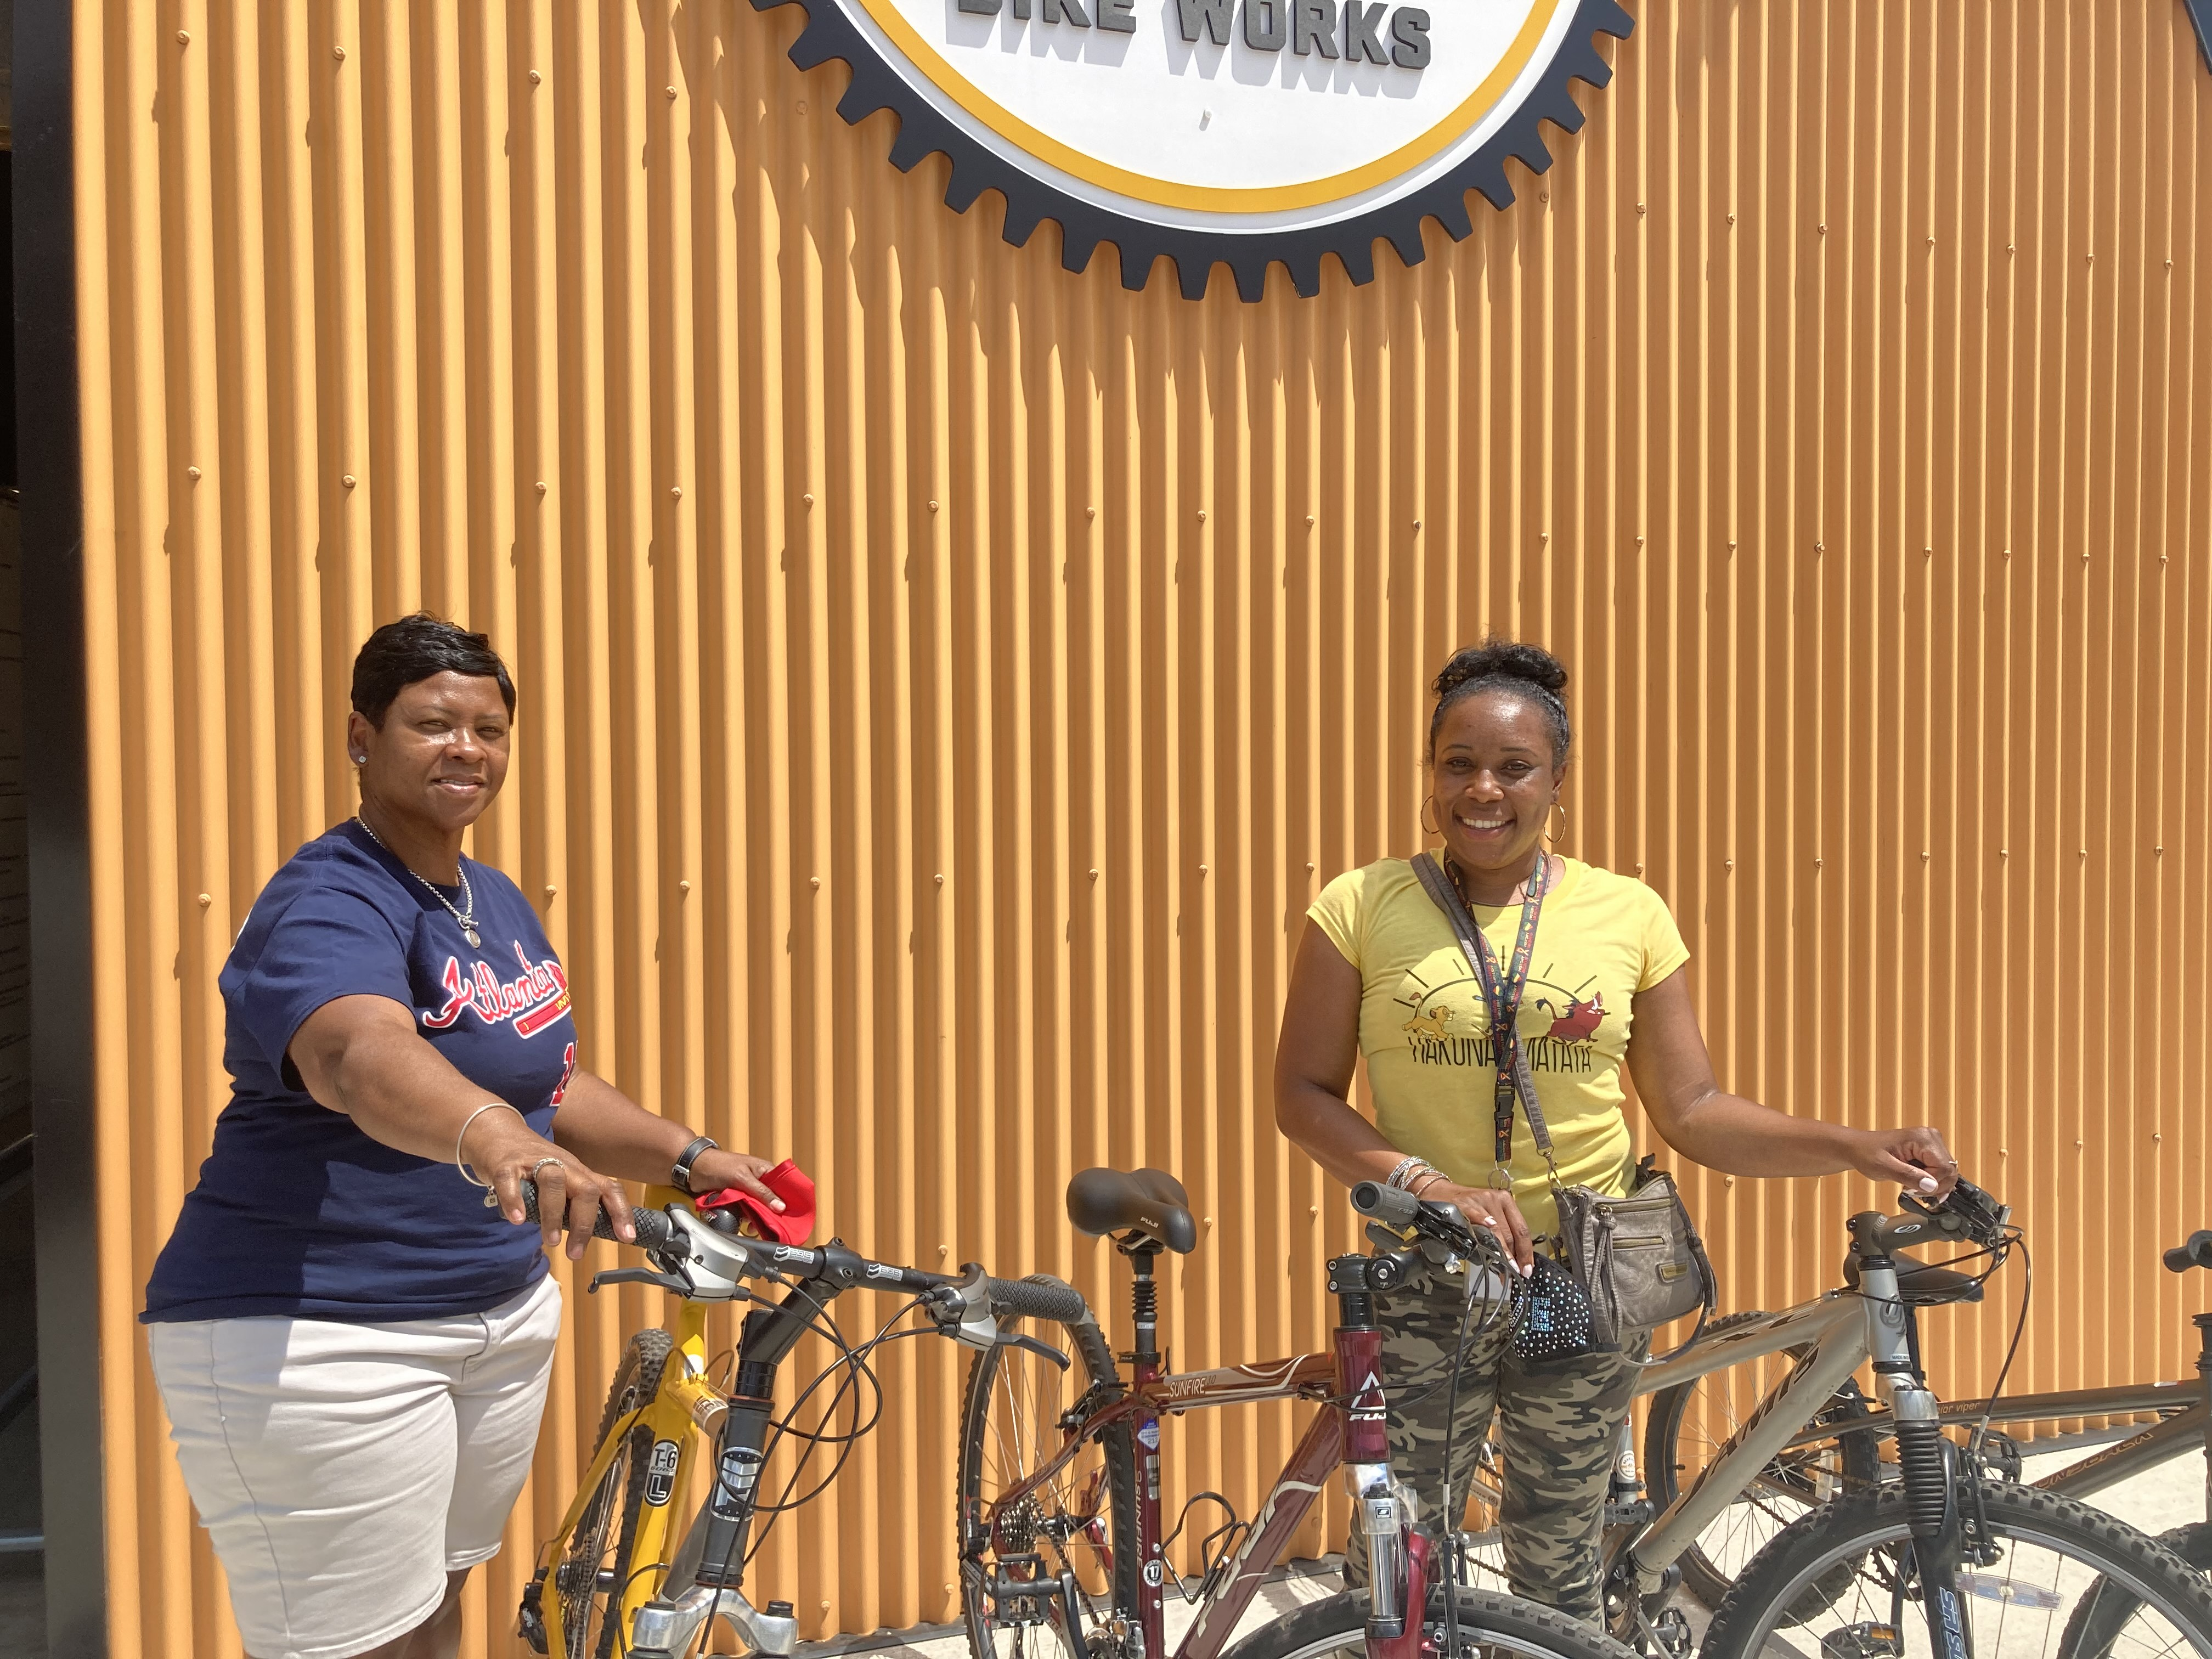 Dr. Hill and Coach Johnson picking up bikes from Bearings Bike Works